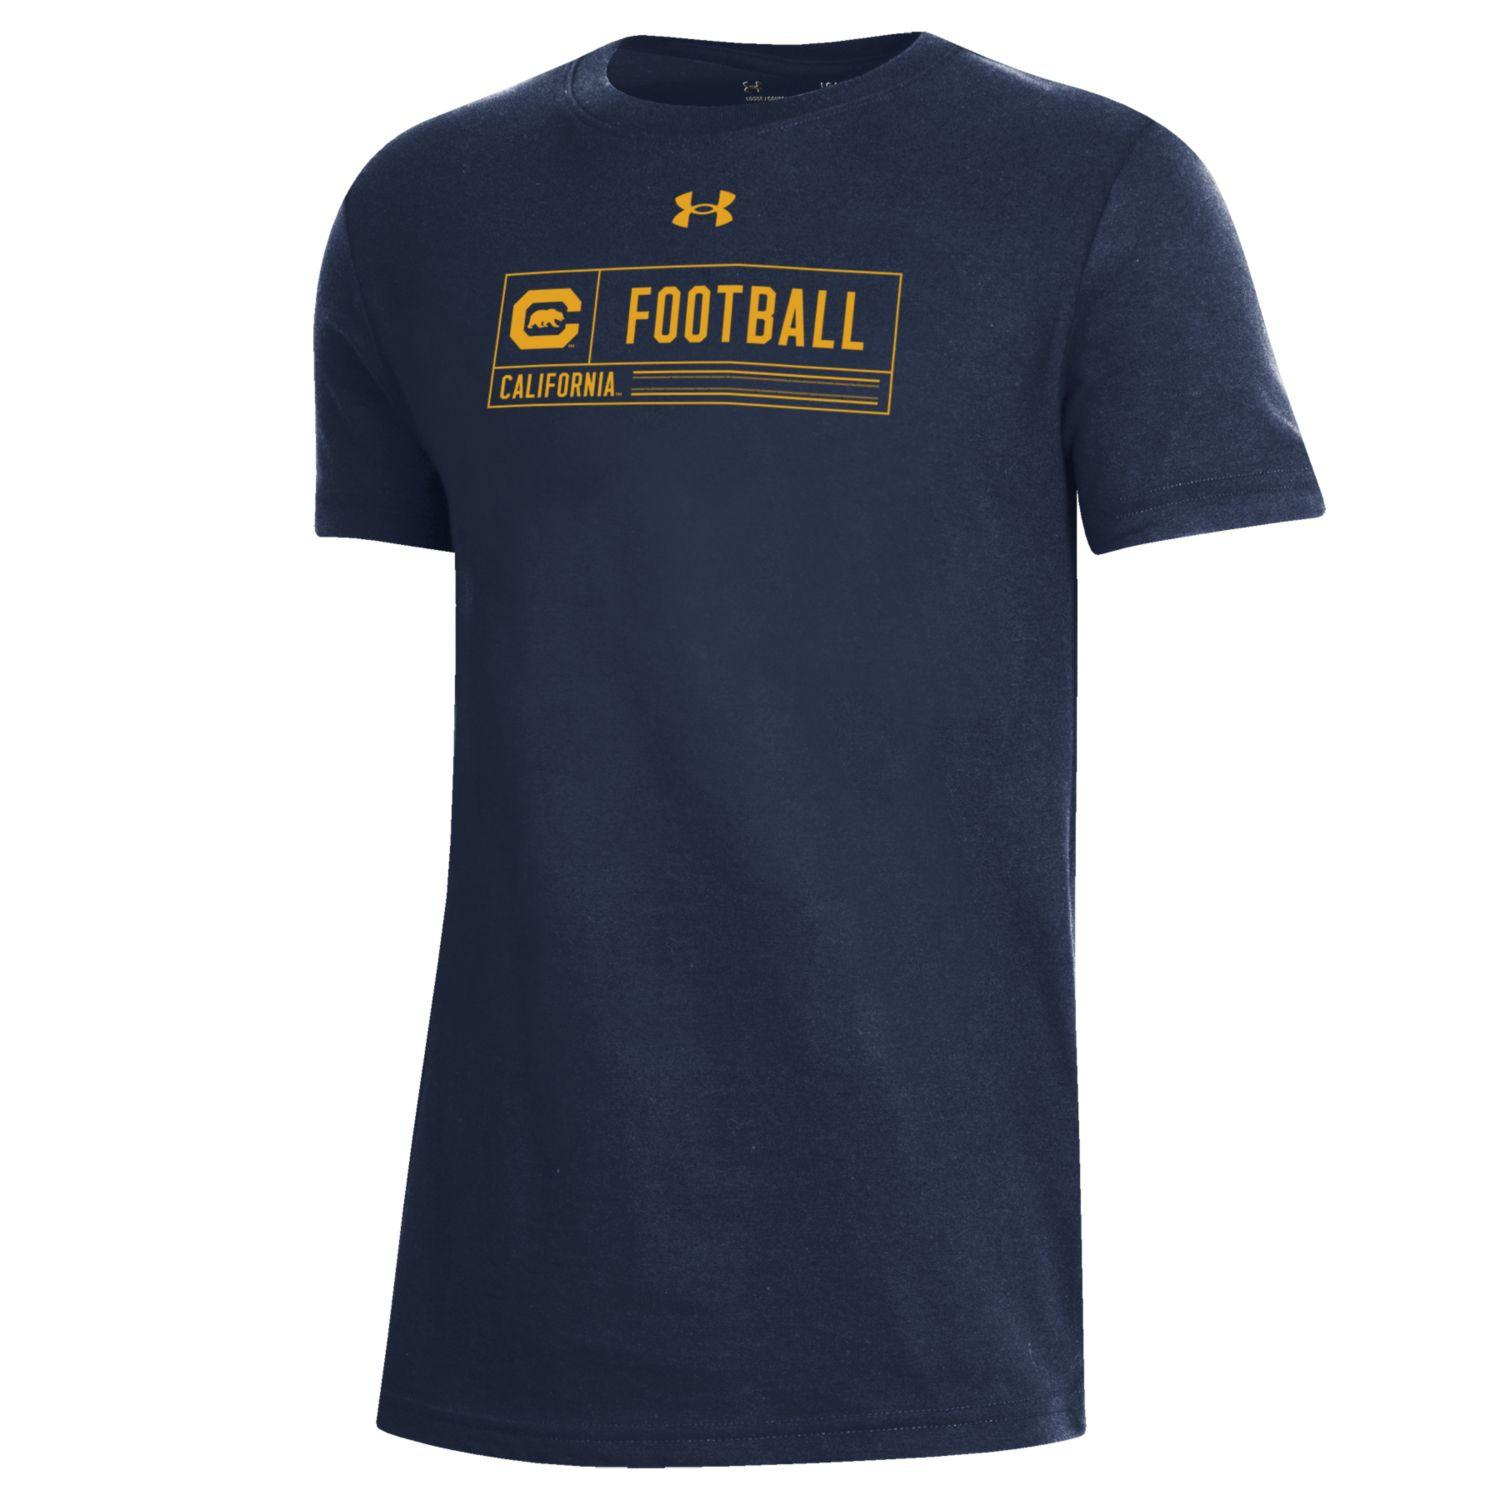 Youth B Performance Cotton SS Tee Football